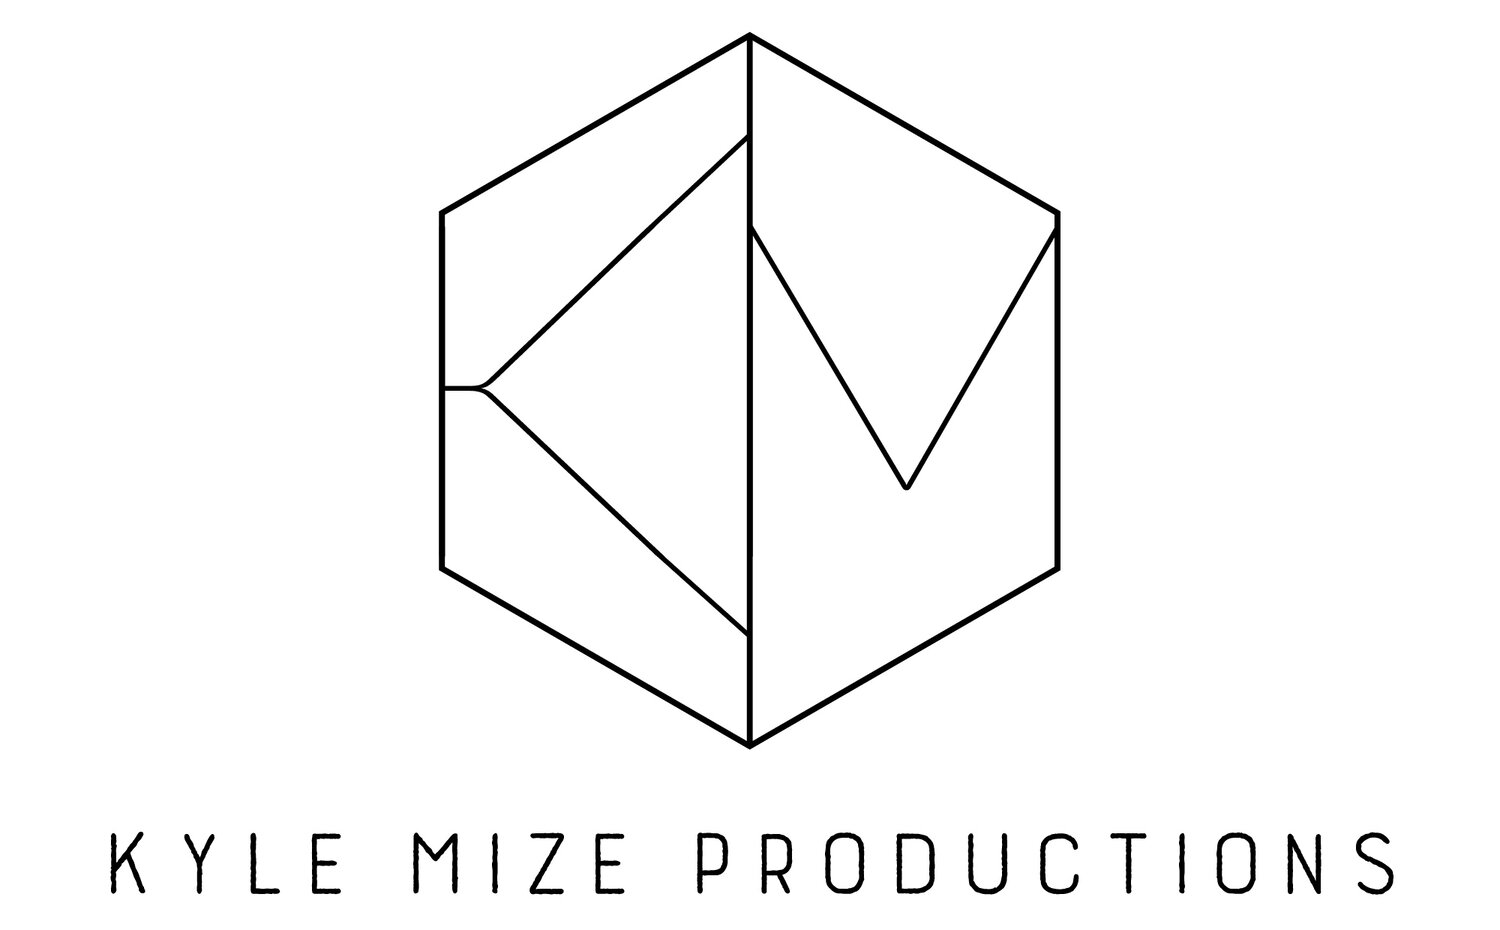 Kyle Mize Productions